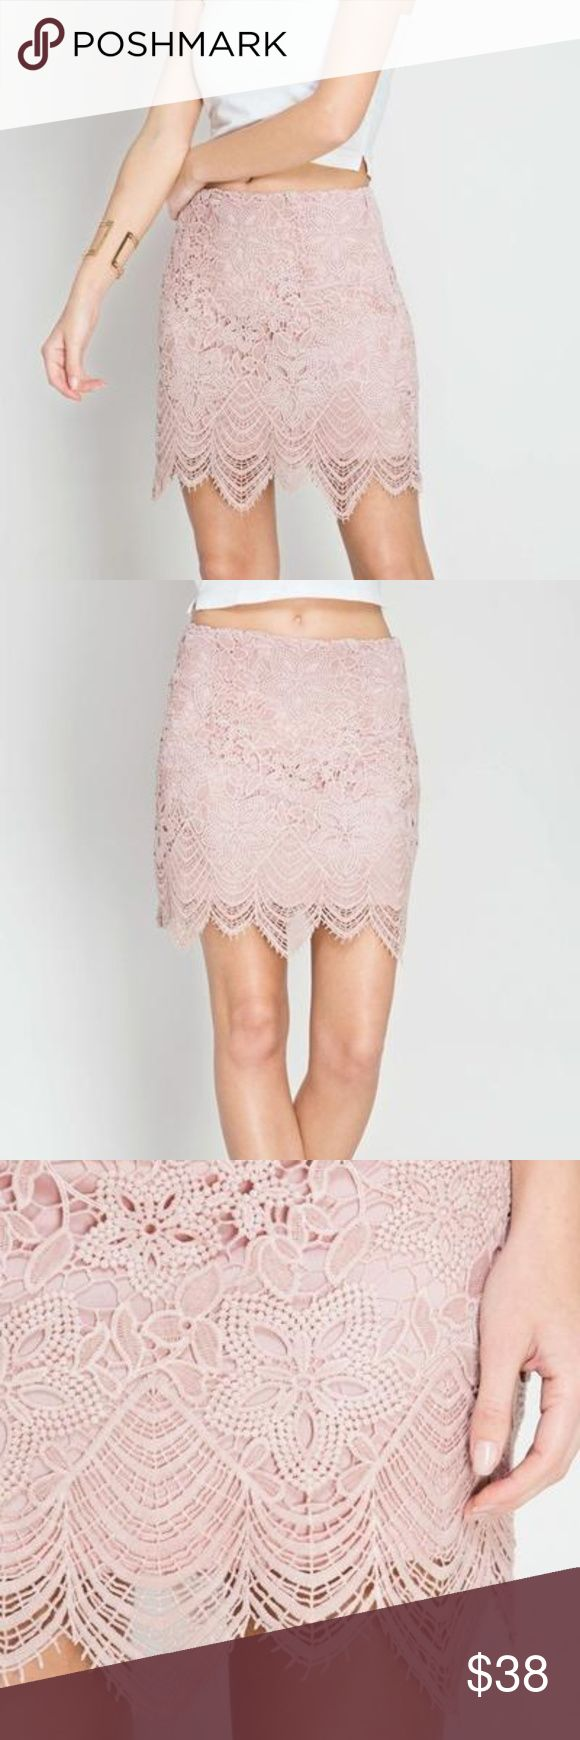 Blush Eyelash Lace Mini Skirt Scalloped Hem Pink -Eyelash lace mini skirt -Scalloped hem -Fully lined -Non-sheer -Fitted -Overlay: 60% cotton, 40% polyester -Lining: 100% polyester -True To Size Skirts Mini